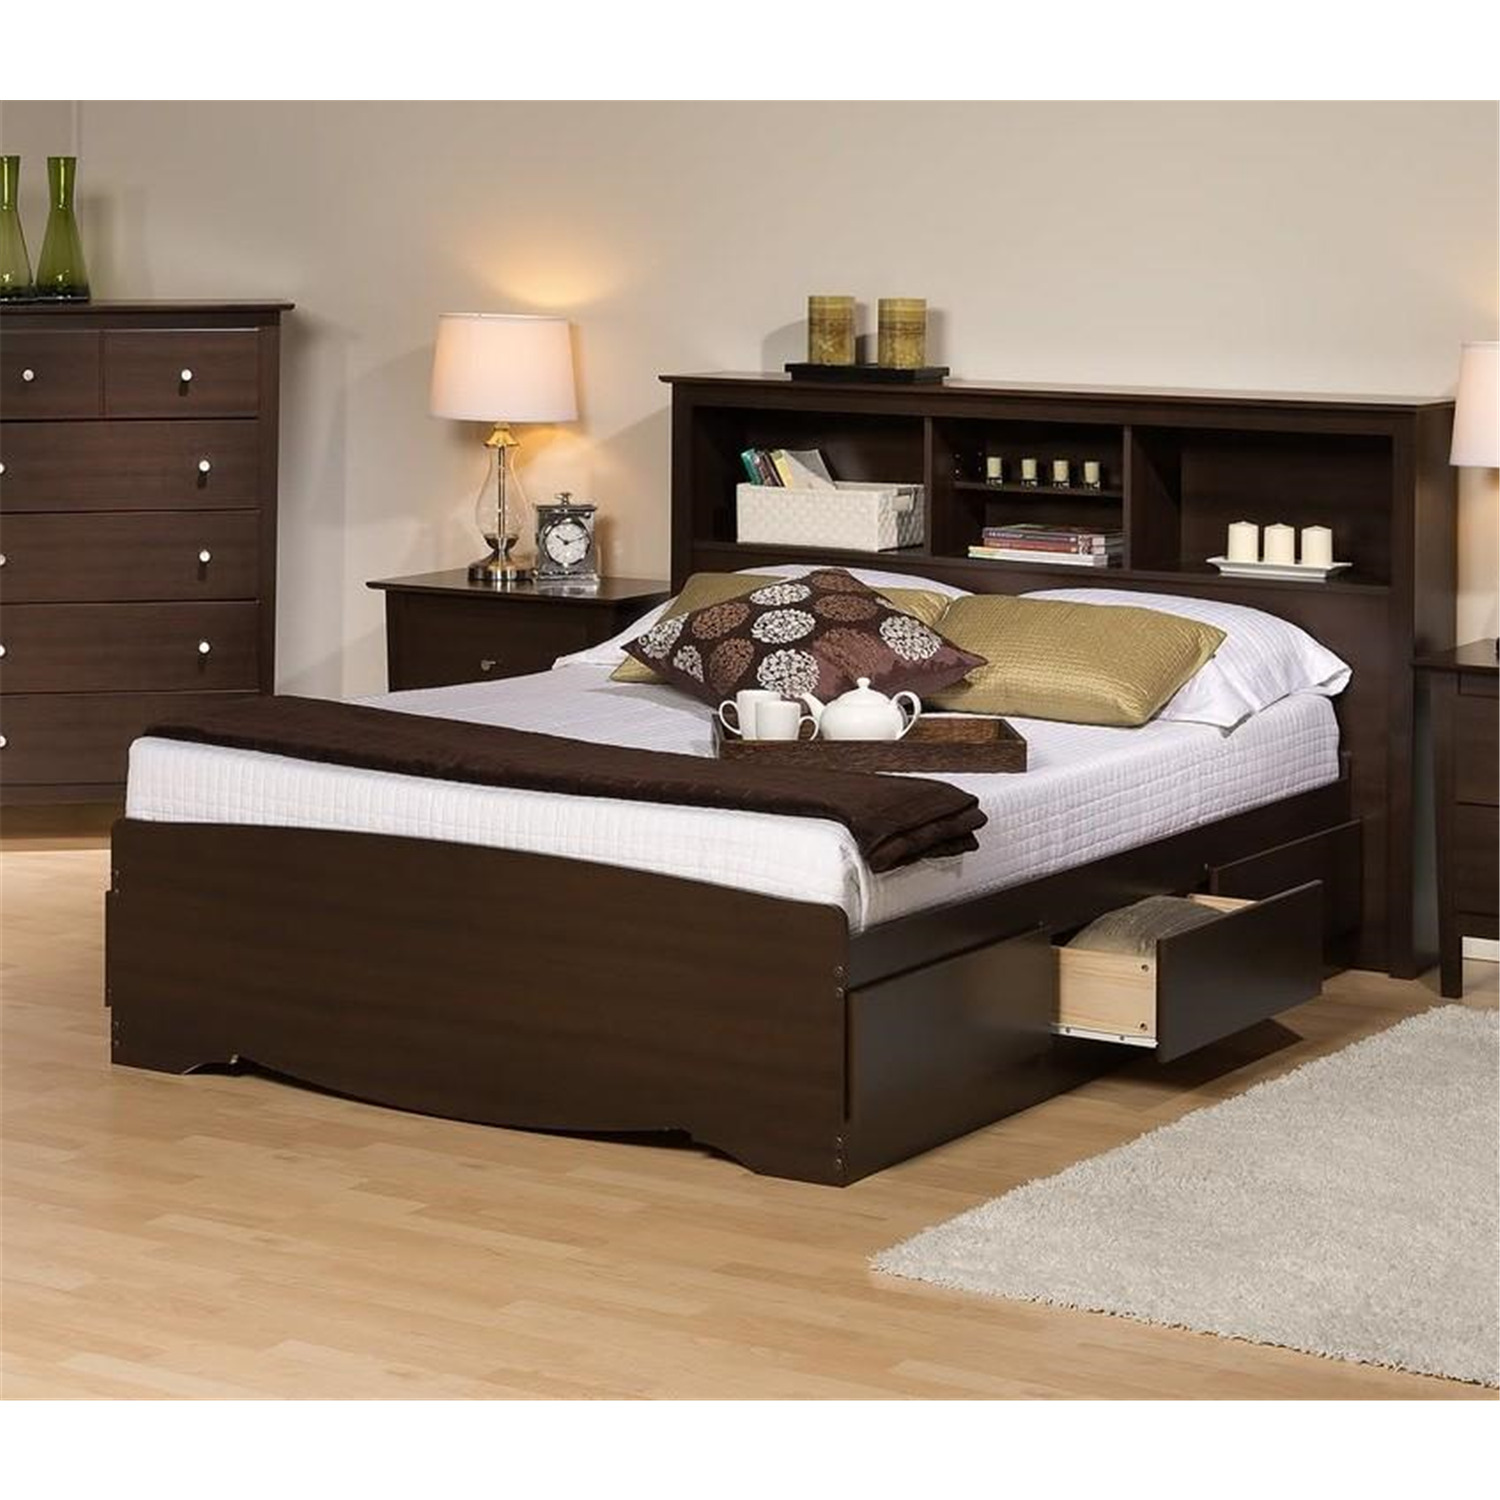 Platform Storage Bed w/ Bookcase Headboard | OJCommerce